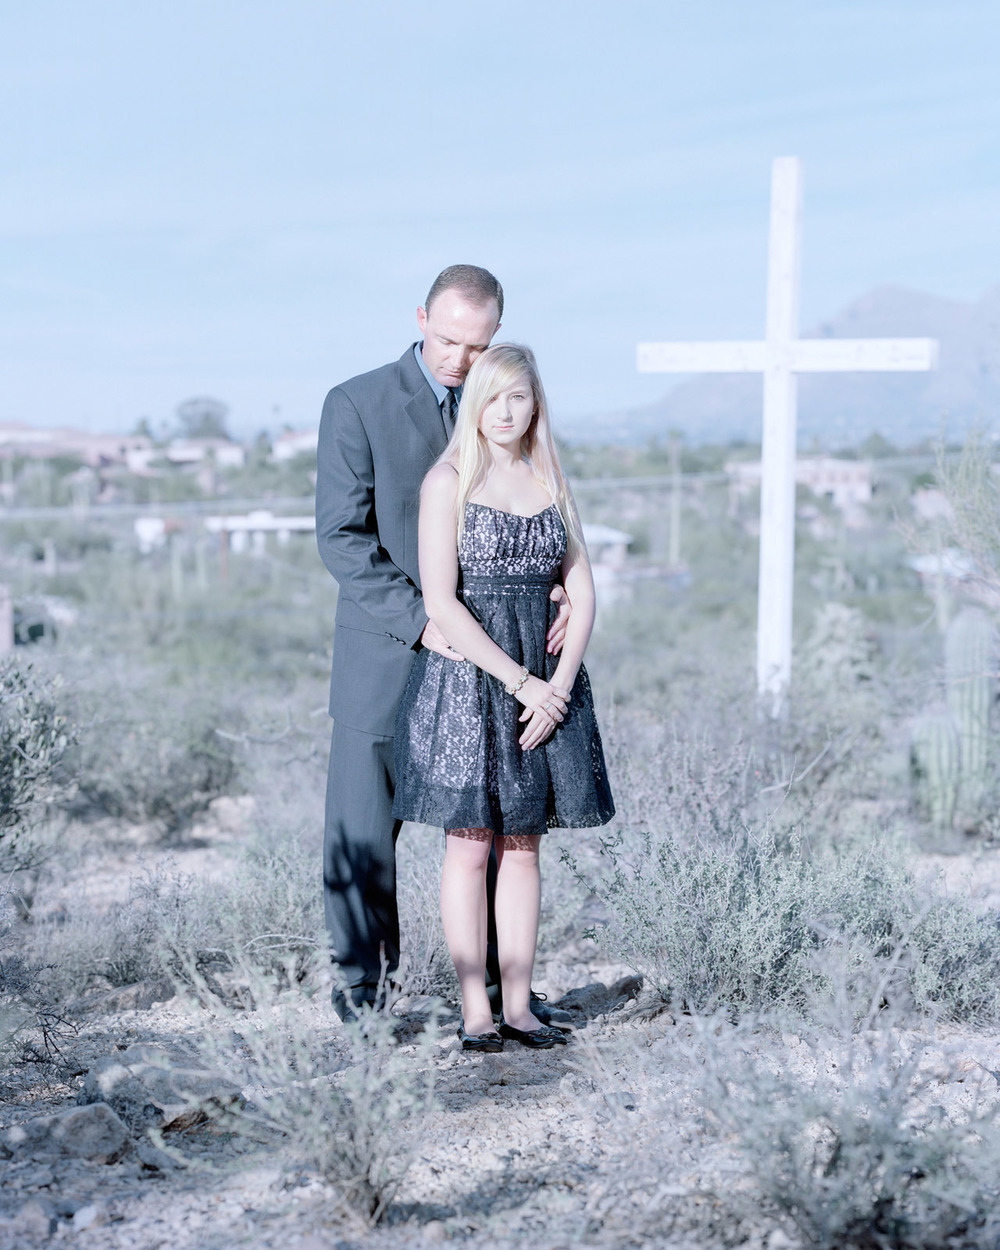 Will & Nicole Roosma, Tucson, Arizona